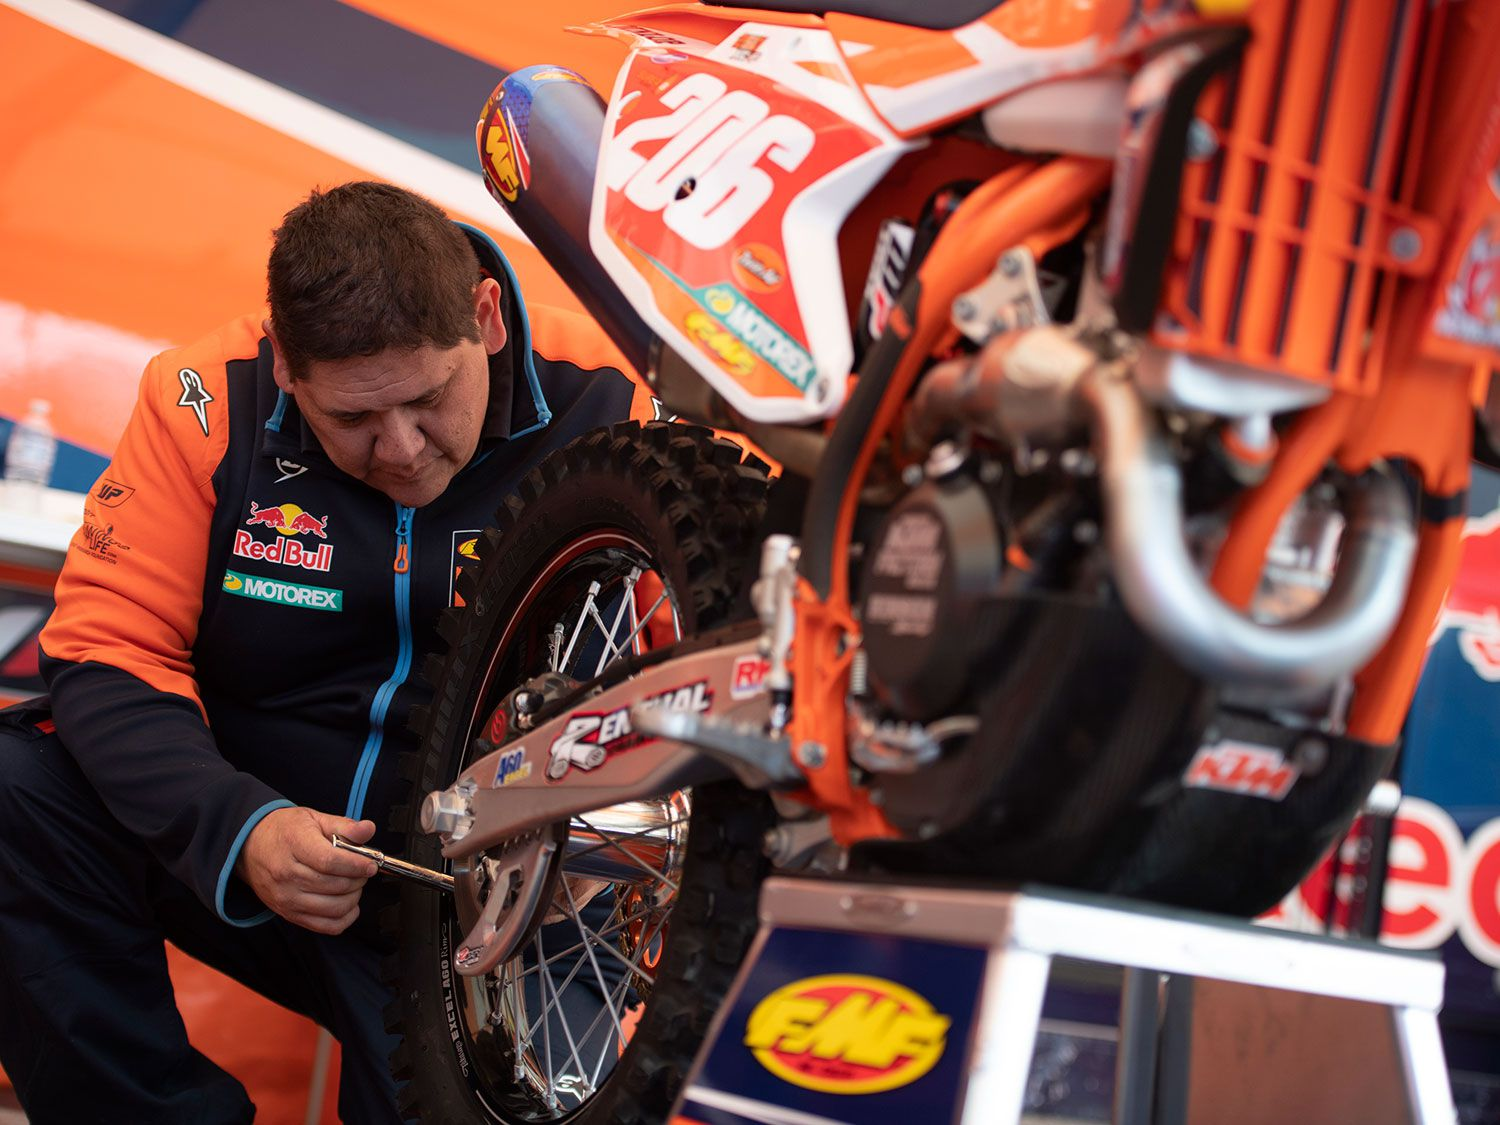 KTM factory mechanic Charles Marchant checks the spokes on Josh Toth's bike before a race.